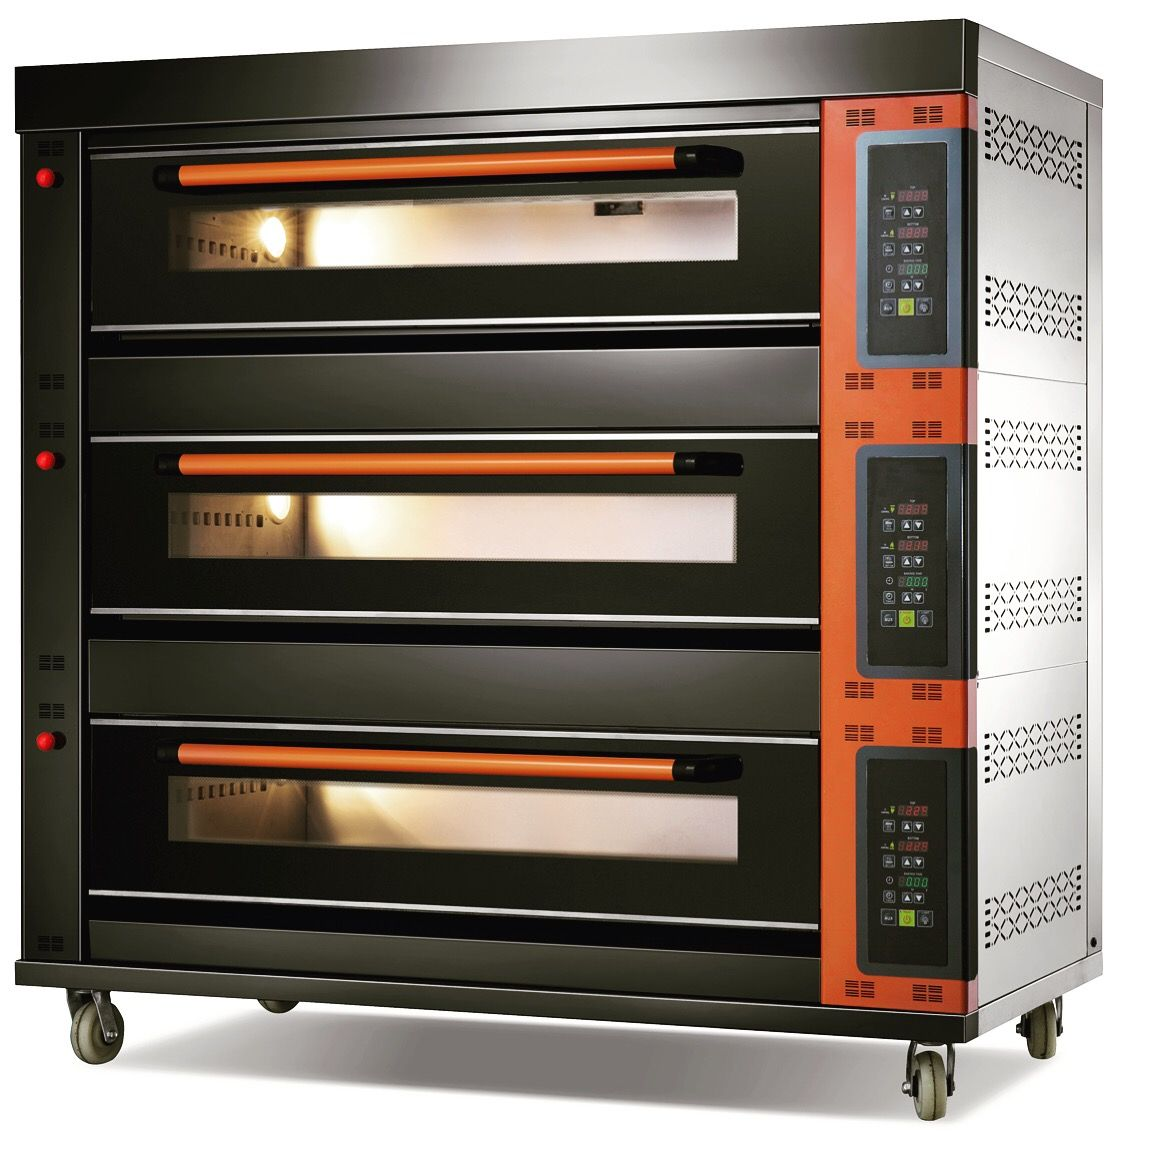 I Can T Believe The 2020 Oven Is So Popular Gas Oven Toaster Oven Oven